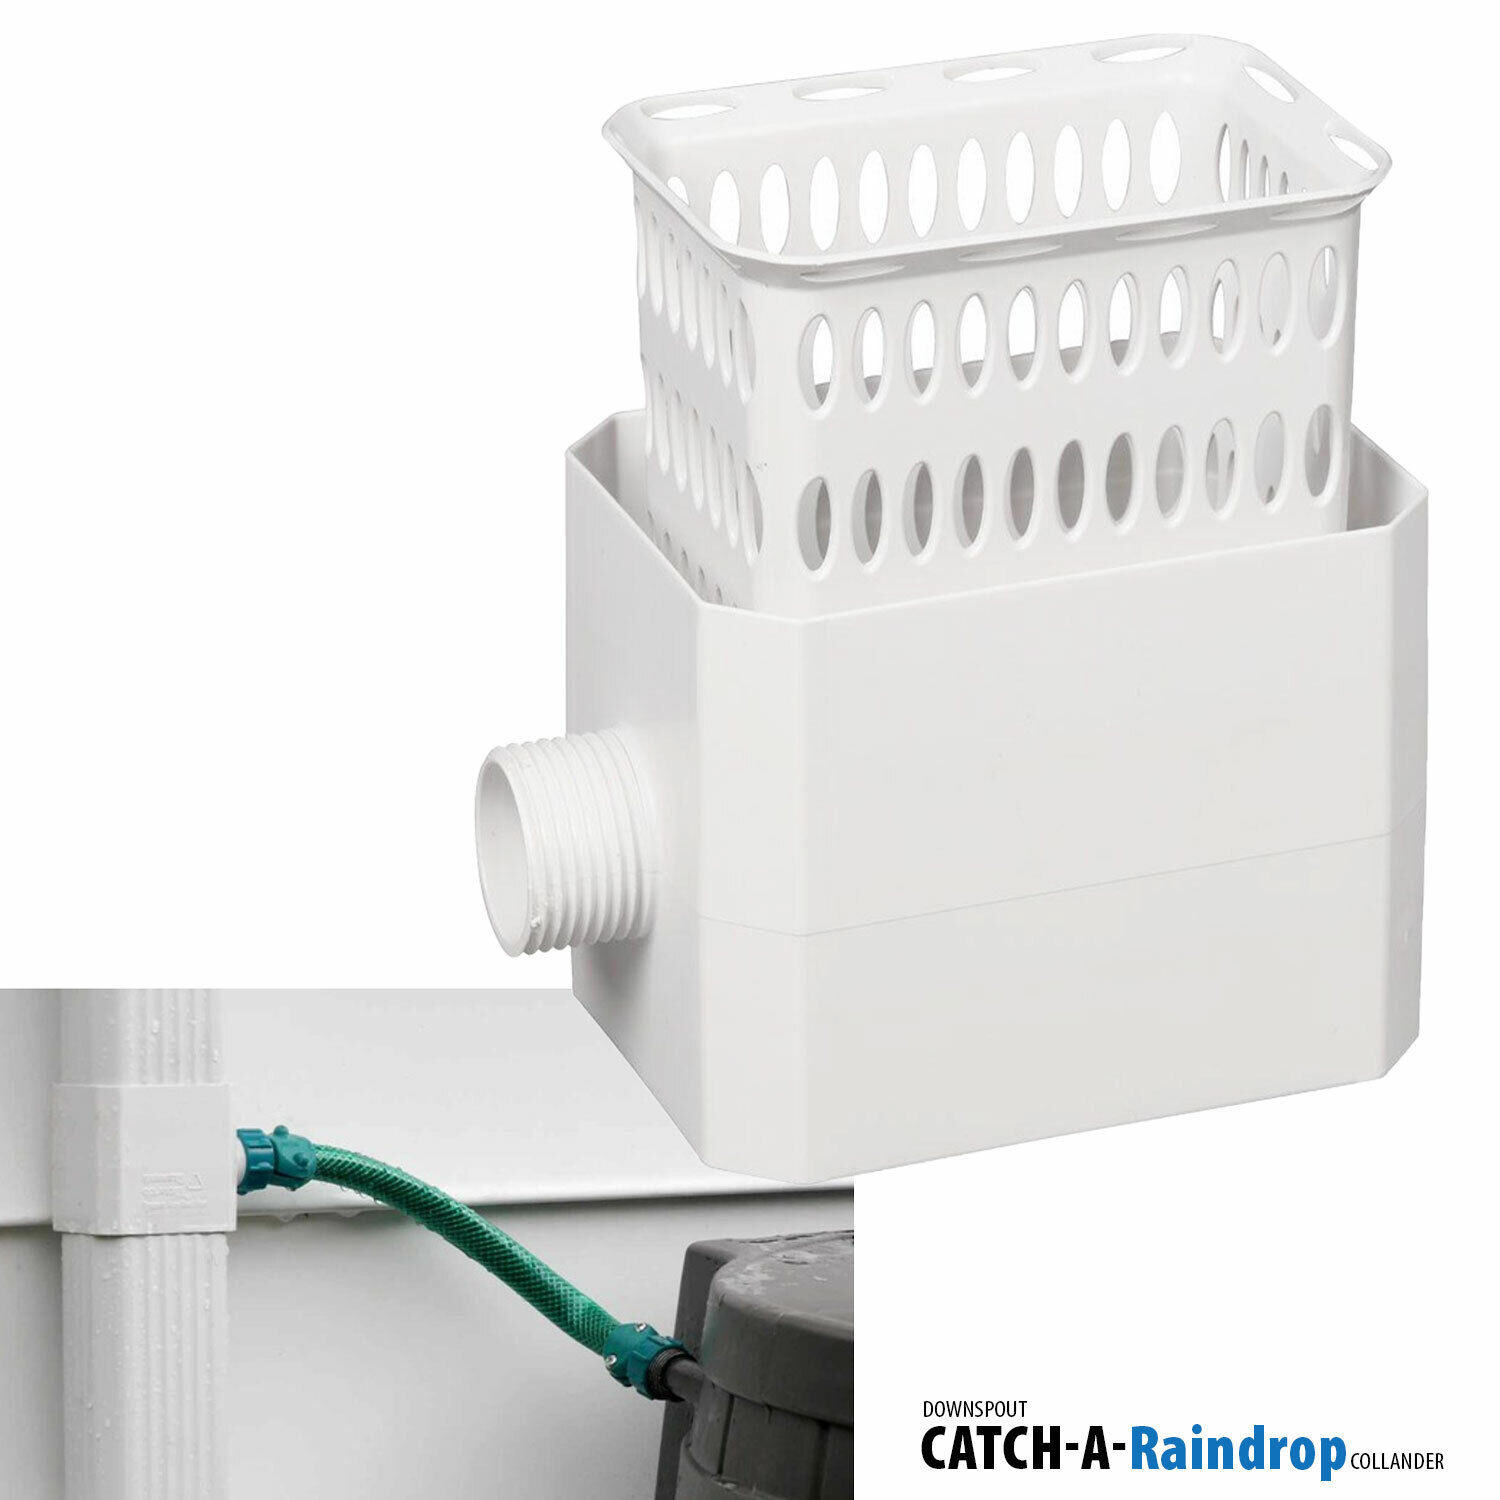 Downspout Rain Water Collection Diverter Connector System Colander 2×3 in White Building & Hardware